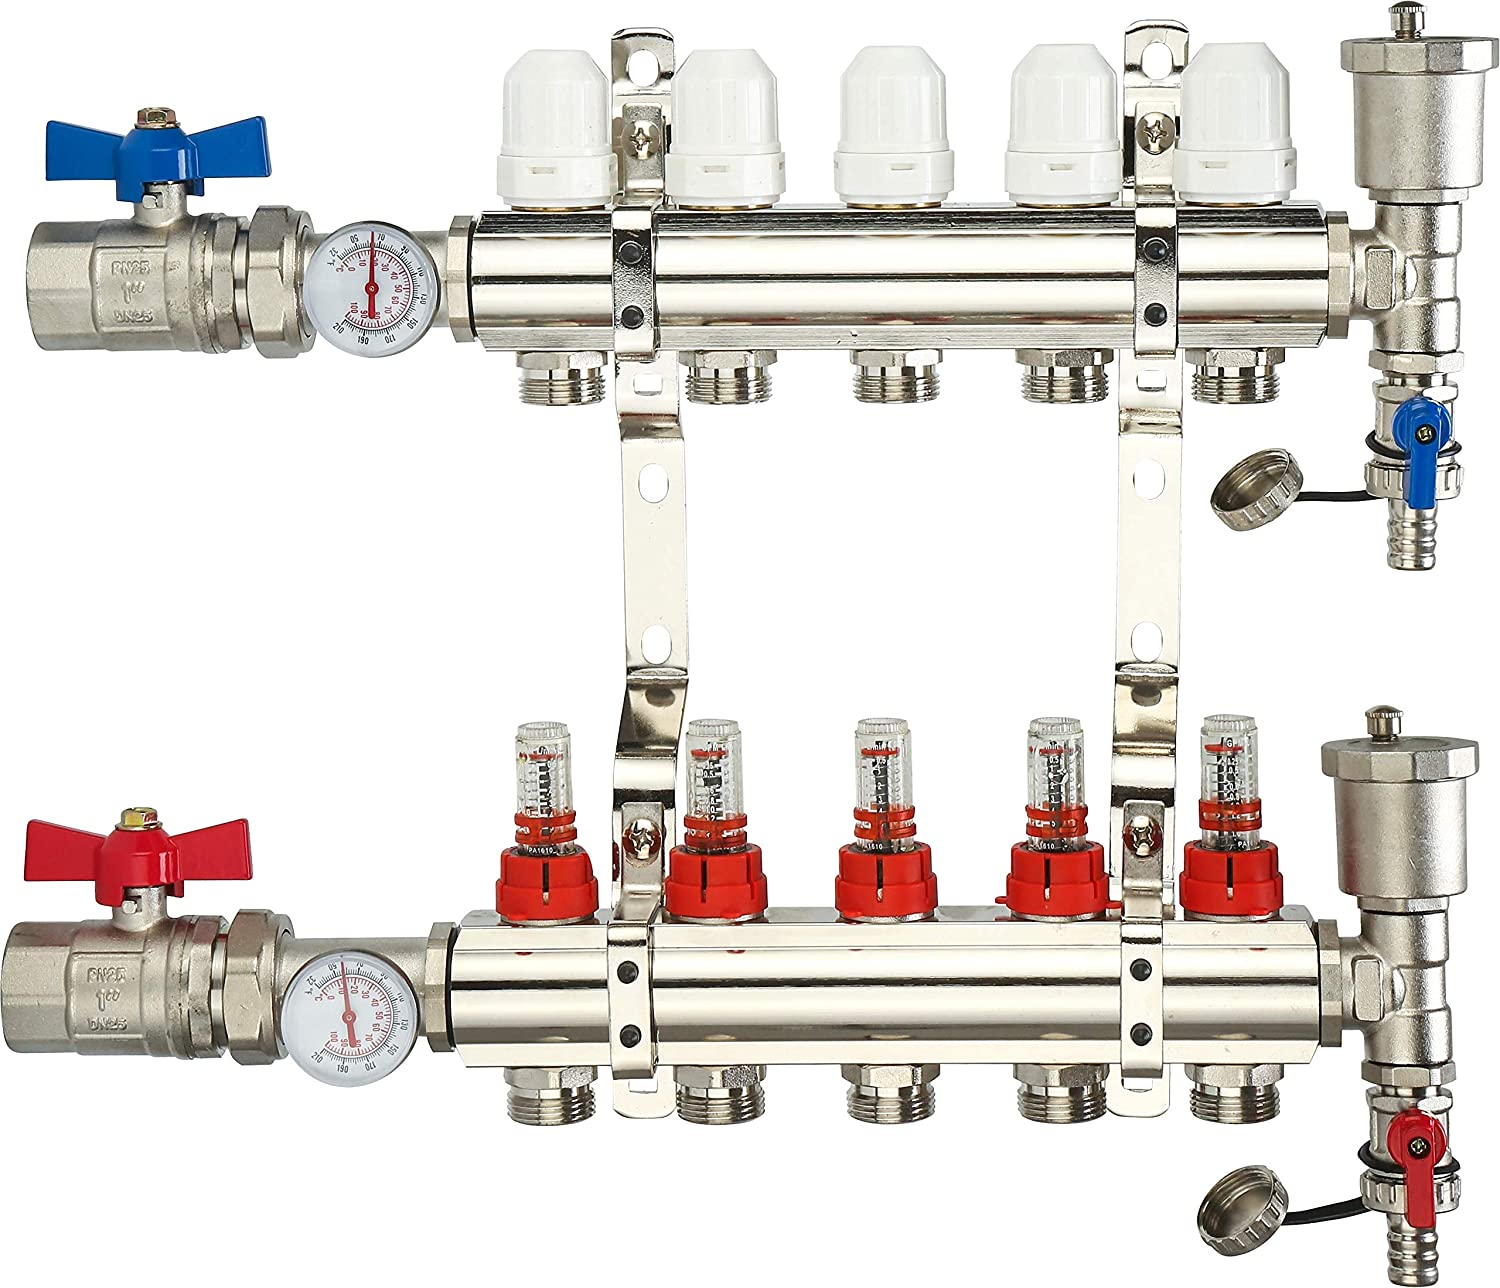 """5 Loop Radiant Heat Manifold, 5-zone PEX Tubing Manifolds with Compatible Outlets, for Hydronic Radiant Floor Heating (1/2"""" 3/4"""" PEX adapters sold separately)"""